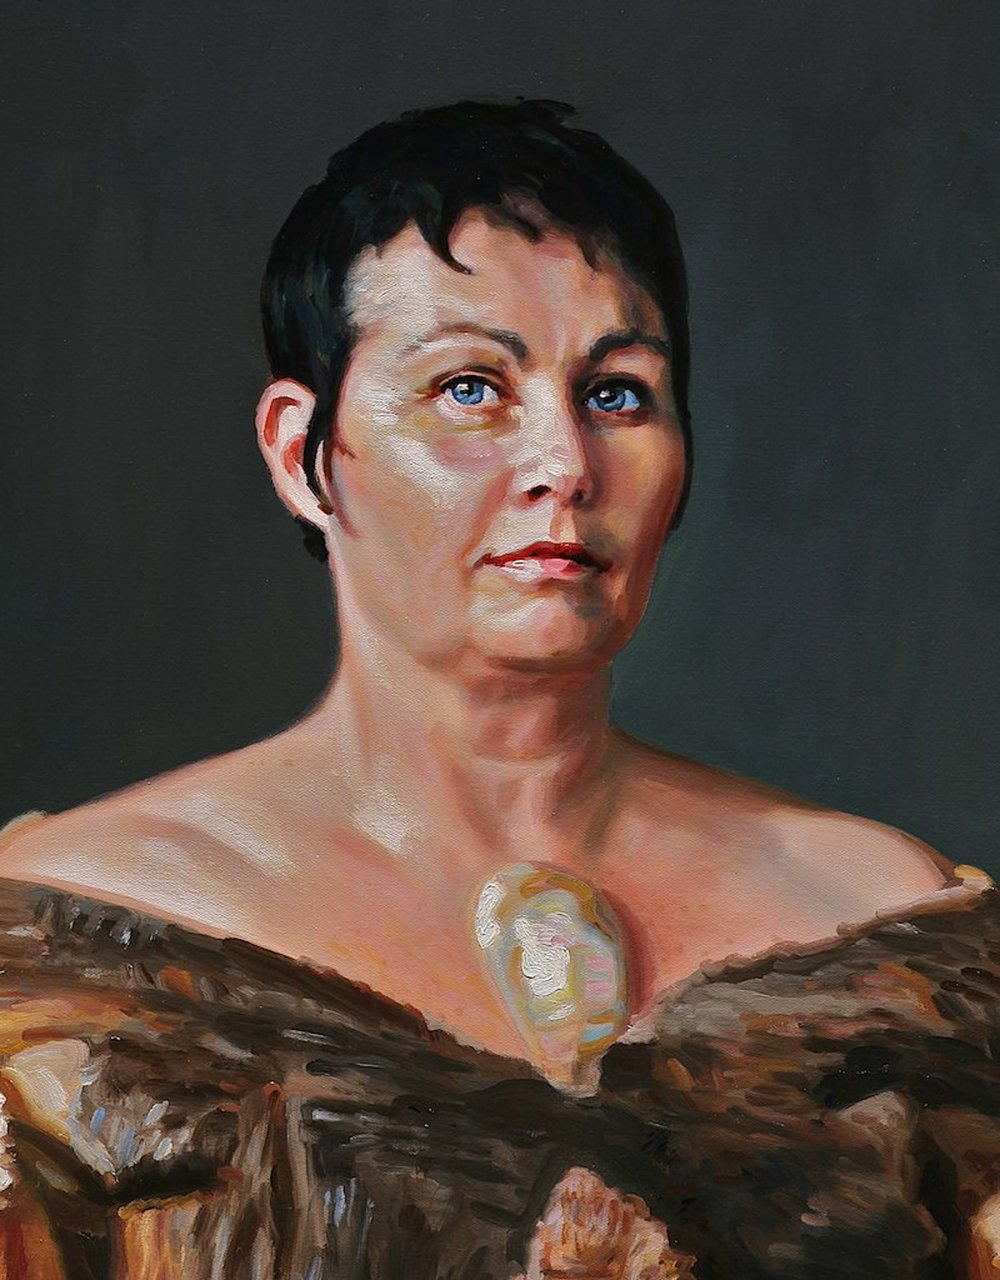 Heiress II (portrait of Joan Ross) 2009